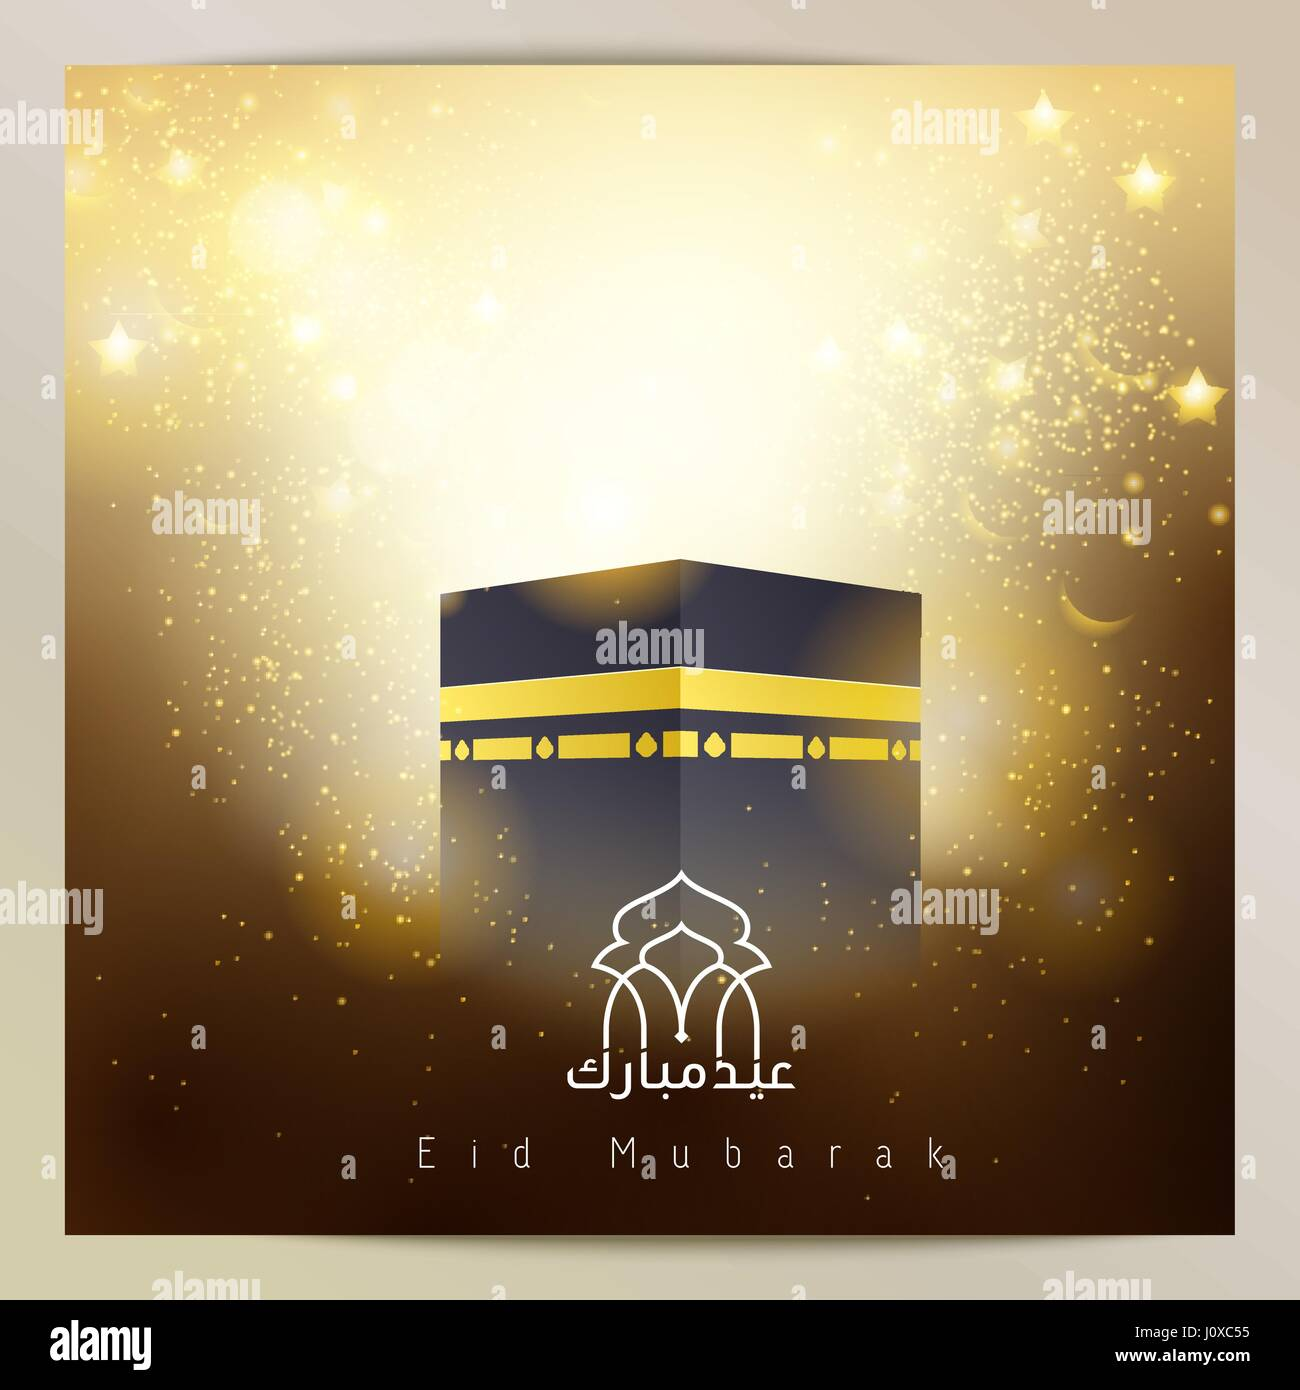 Umrah Banner: Kaaba Eid Adha Mubarak For Hajj Greeting Stock Vector Art